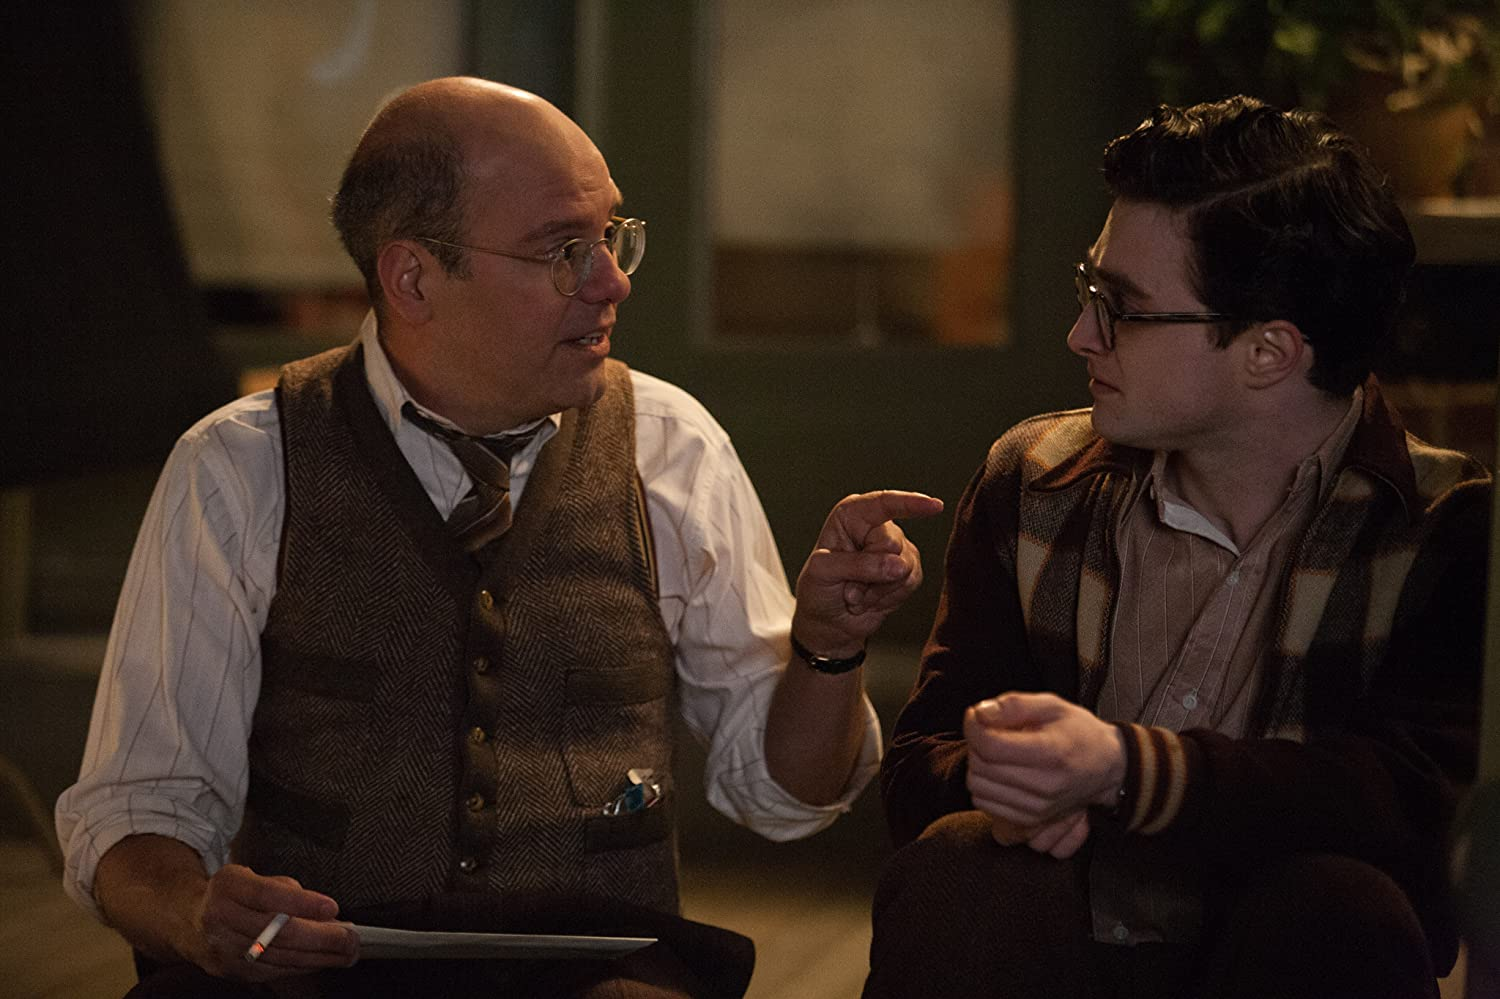 David Cross and Daniel Radcliffe in Kill Your Darlings (2013)